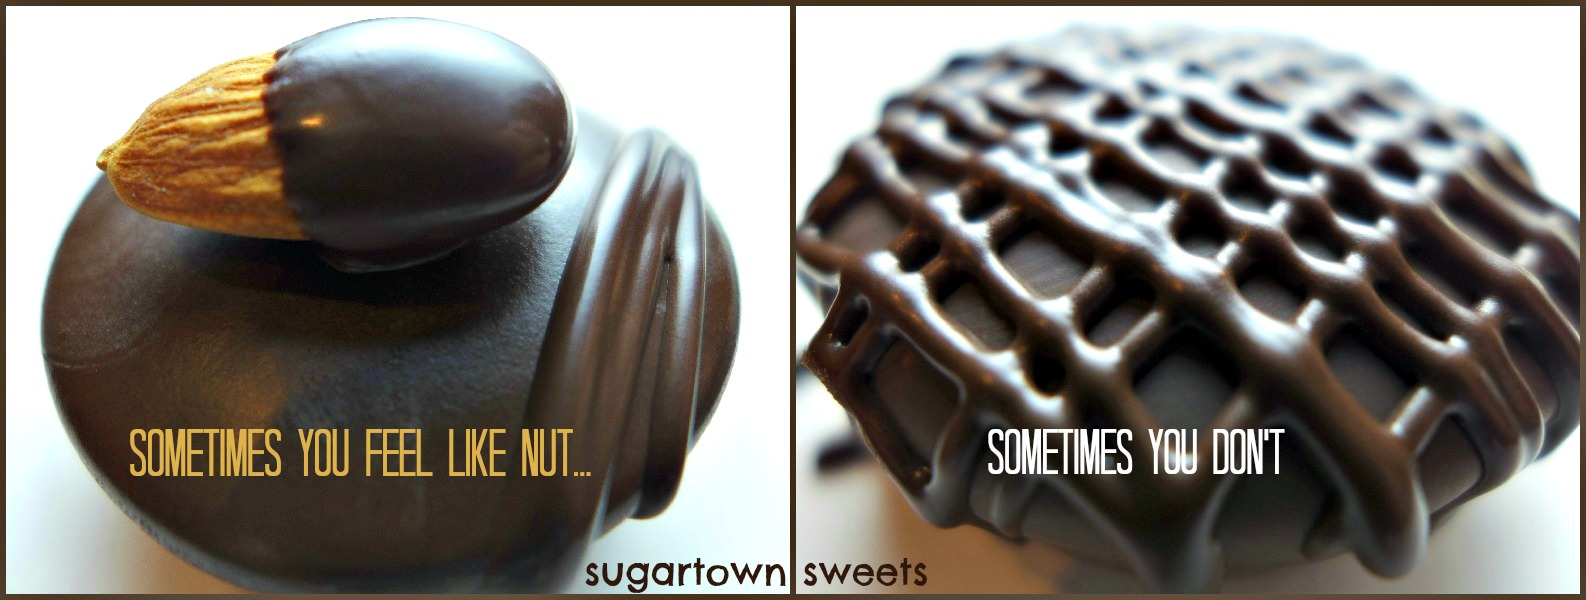 Sugartown Sweets Chocolate Covered Coconut Chocolate Milk